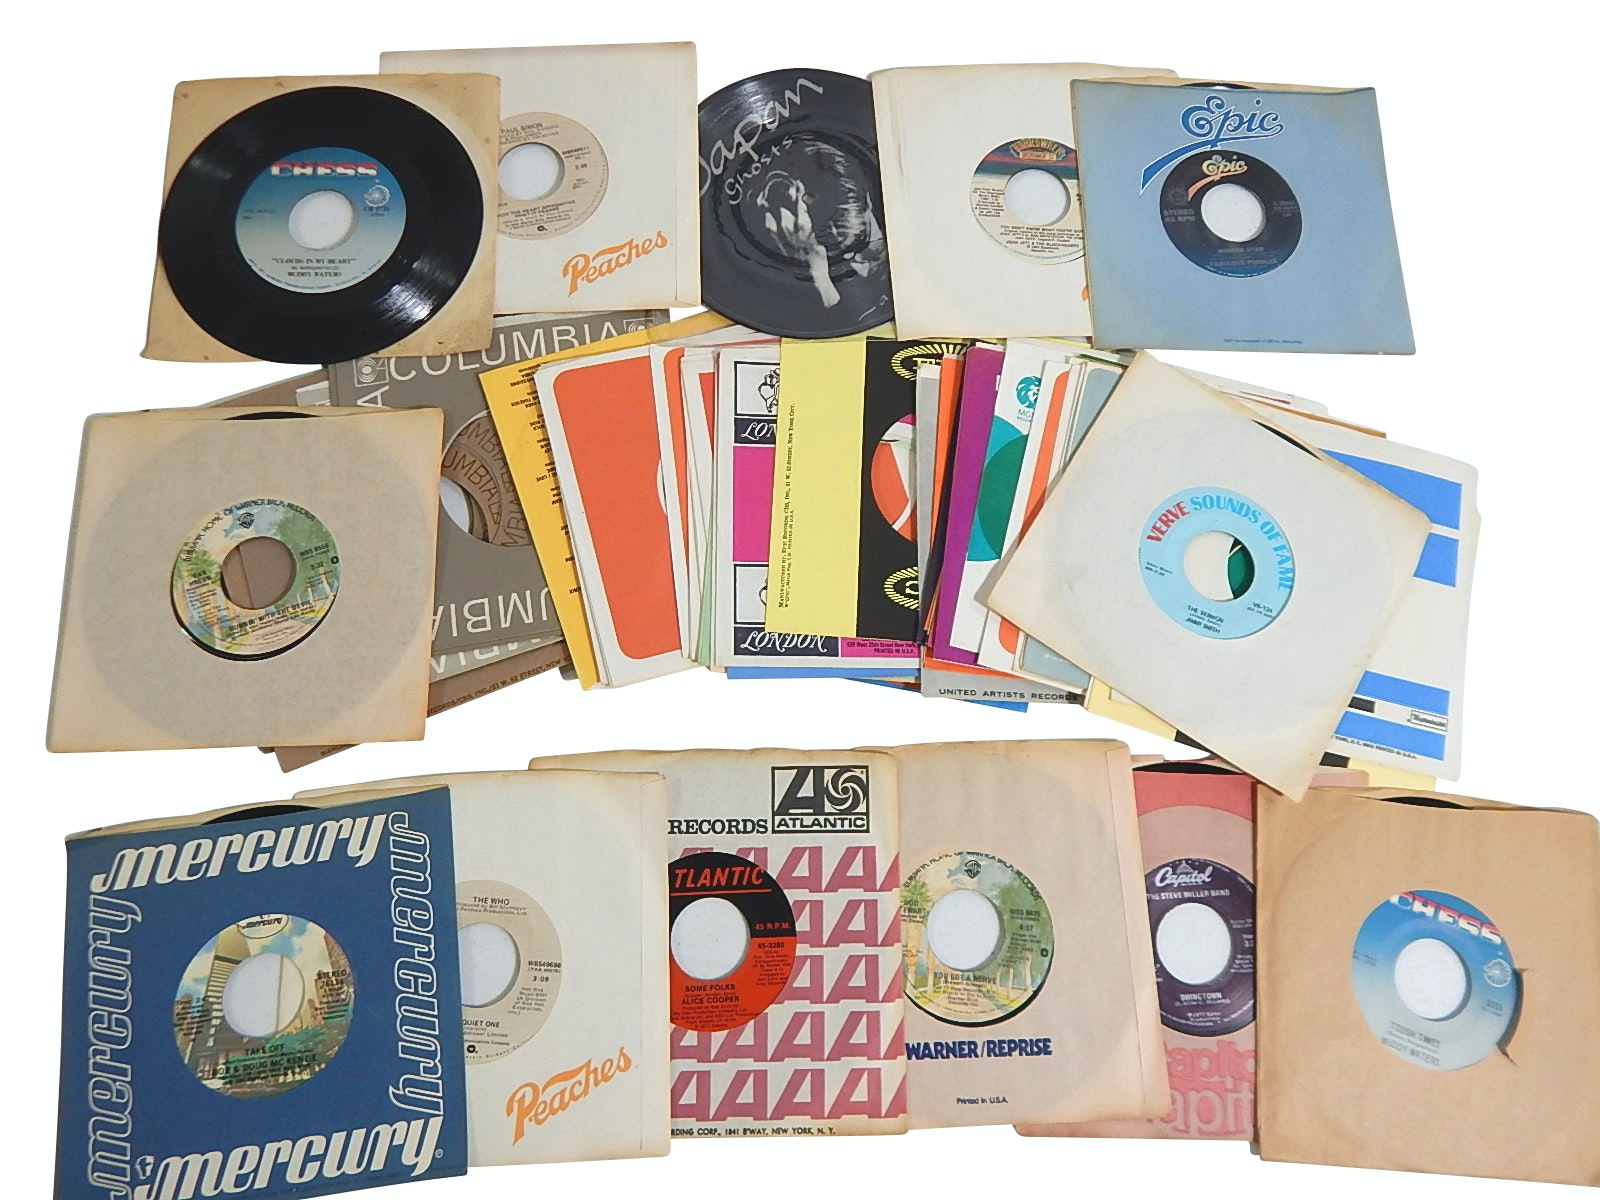 1960s/1970s 45 RPM Records and Picture Discs and Over 50 Record Label Sleeves